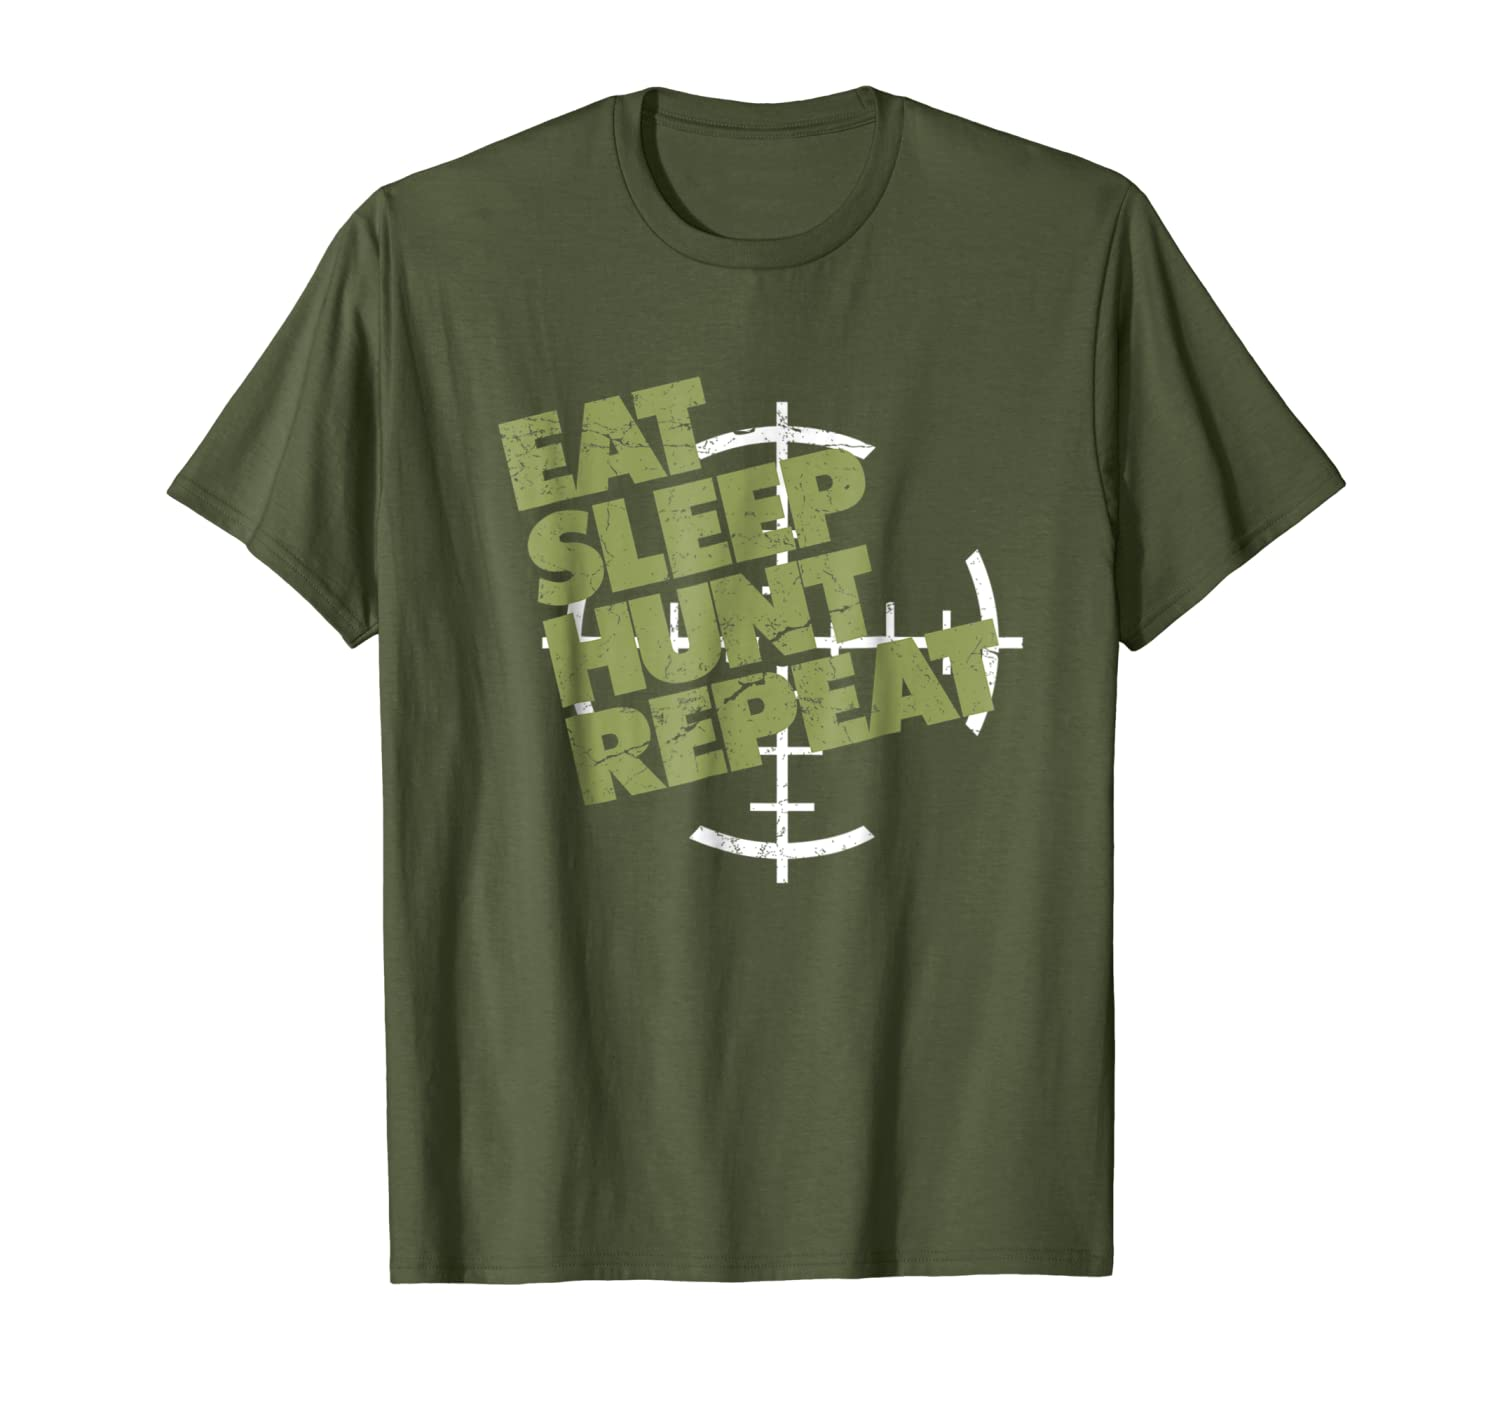 Hunting shirt Eat Sleep Hunt Repeat gift for hunters Unisex Tshirt